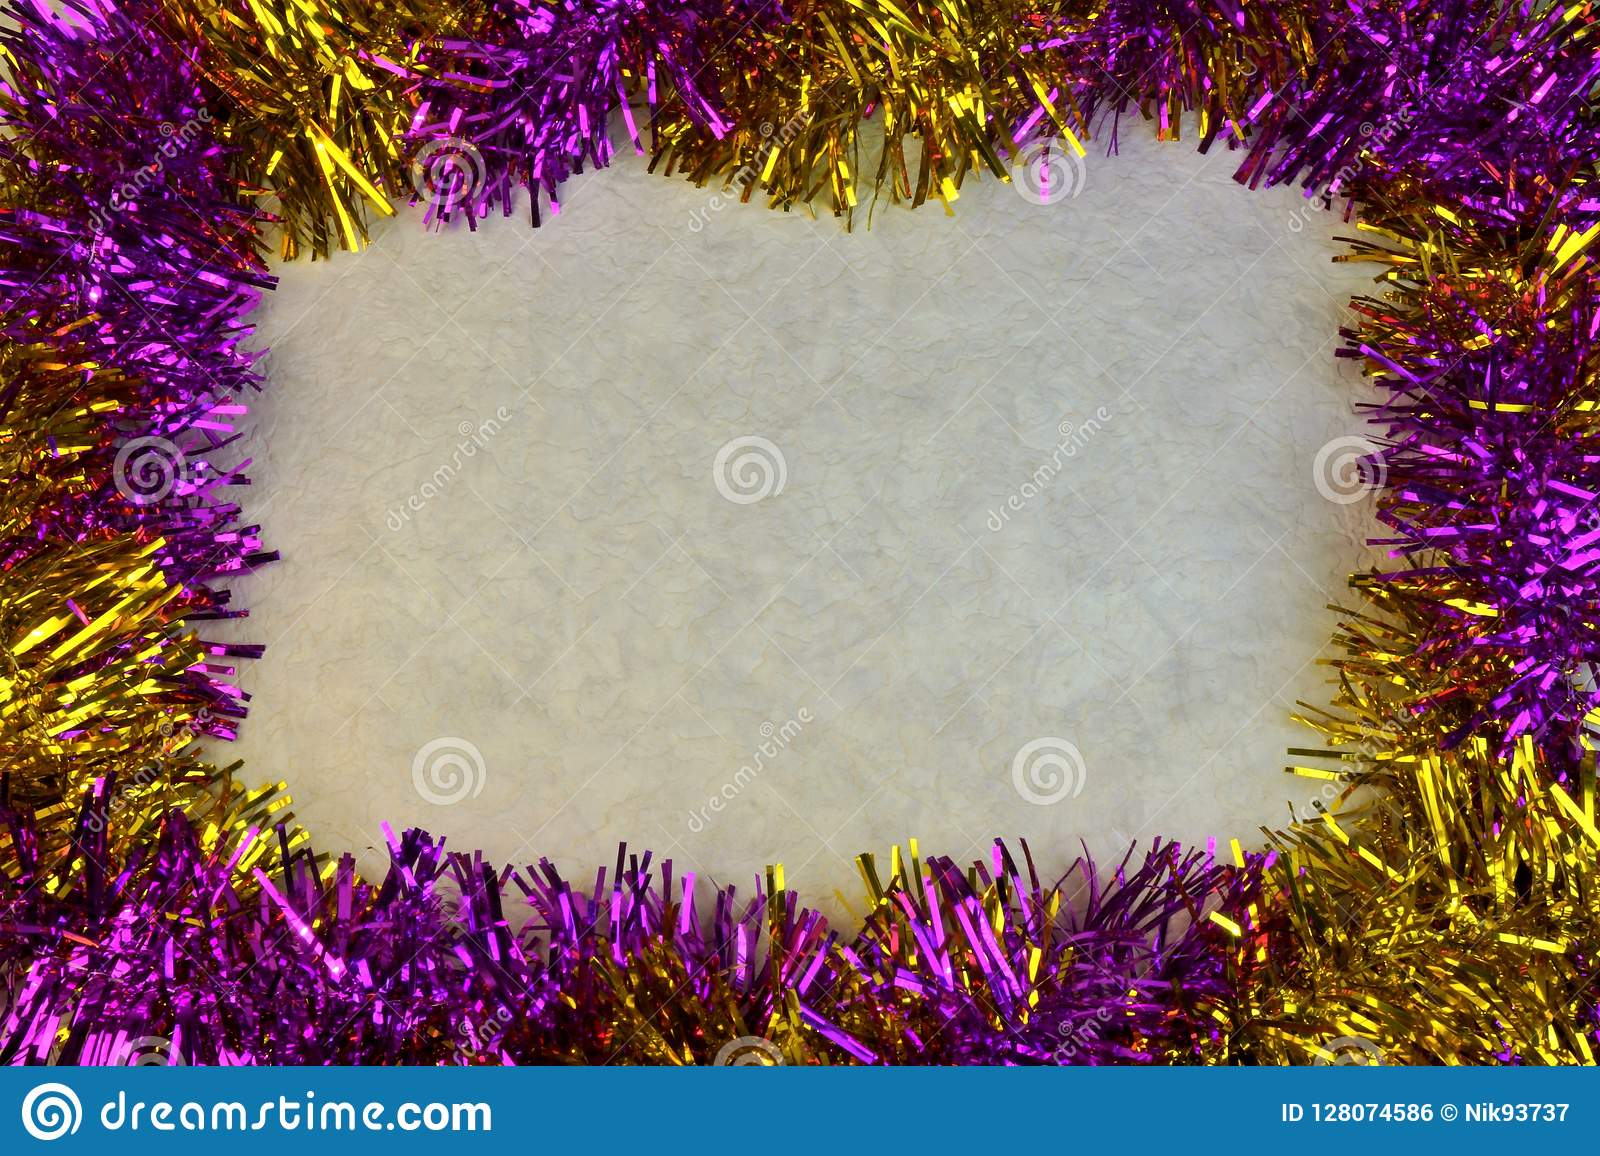 the multi colored background border frame for christmas and new year